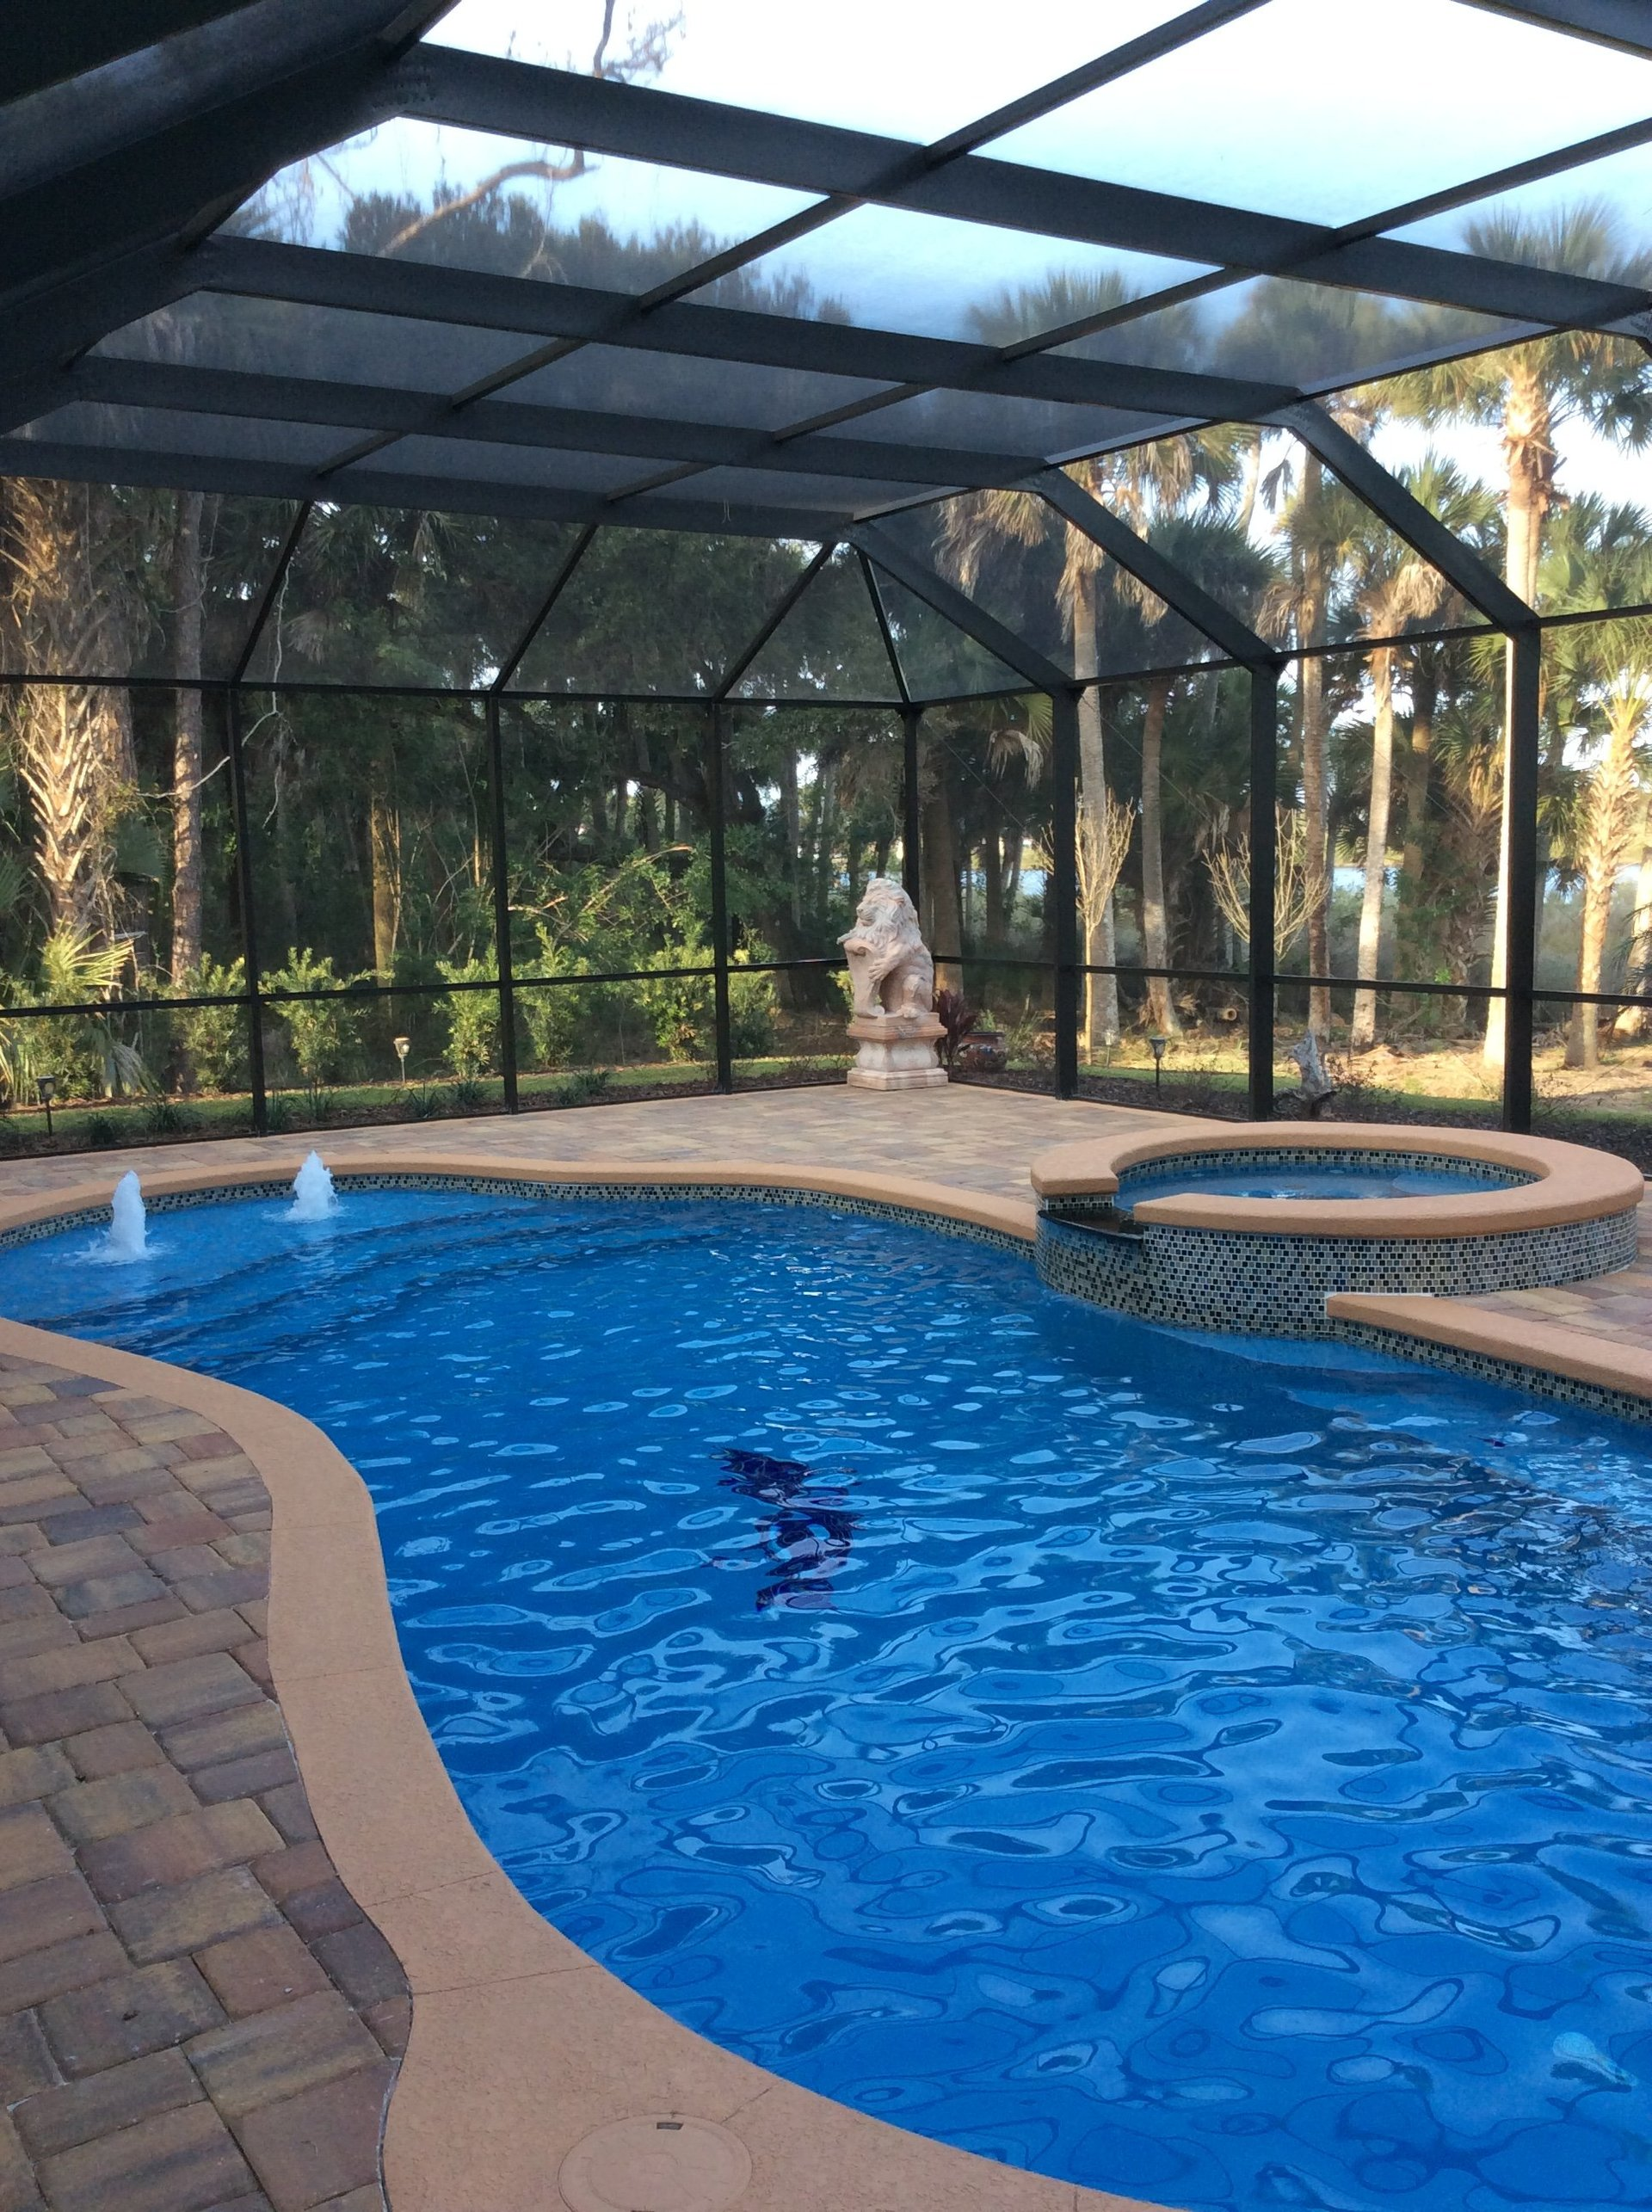 Waldhauer Son In Palm Coast Fl Swimming Pool Contractors Dealers Designers Yellow Pages